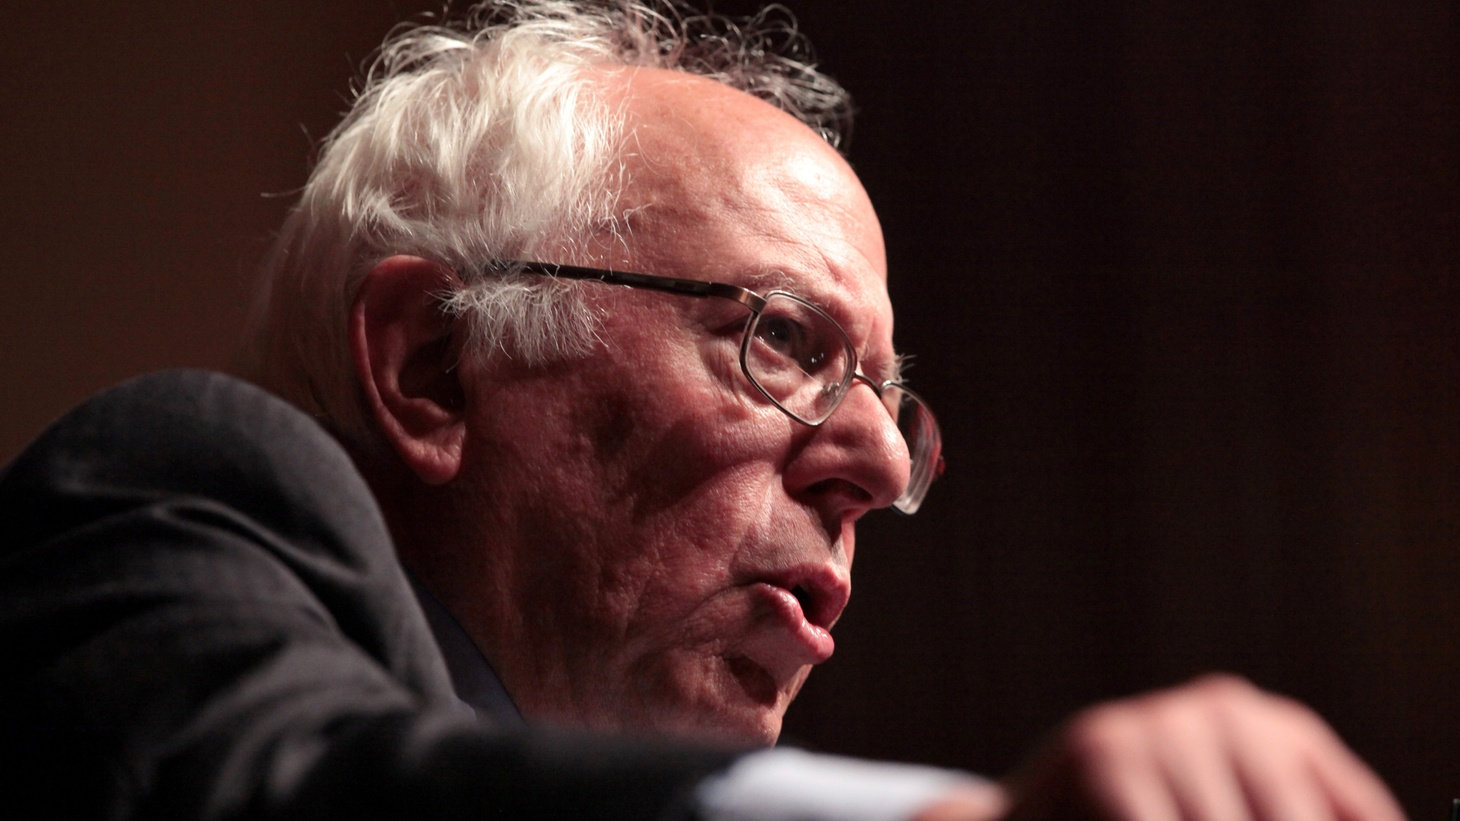 A Democratic official received threats from Bernie Sanders supporters who claim some of their delegates were unfairly excluded. Is the Democratic party headed toward a major split?